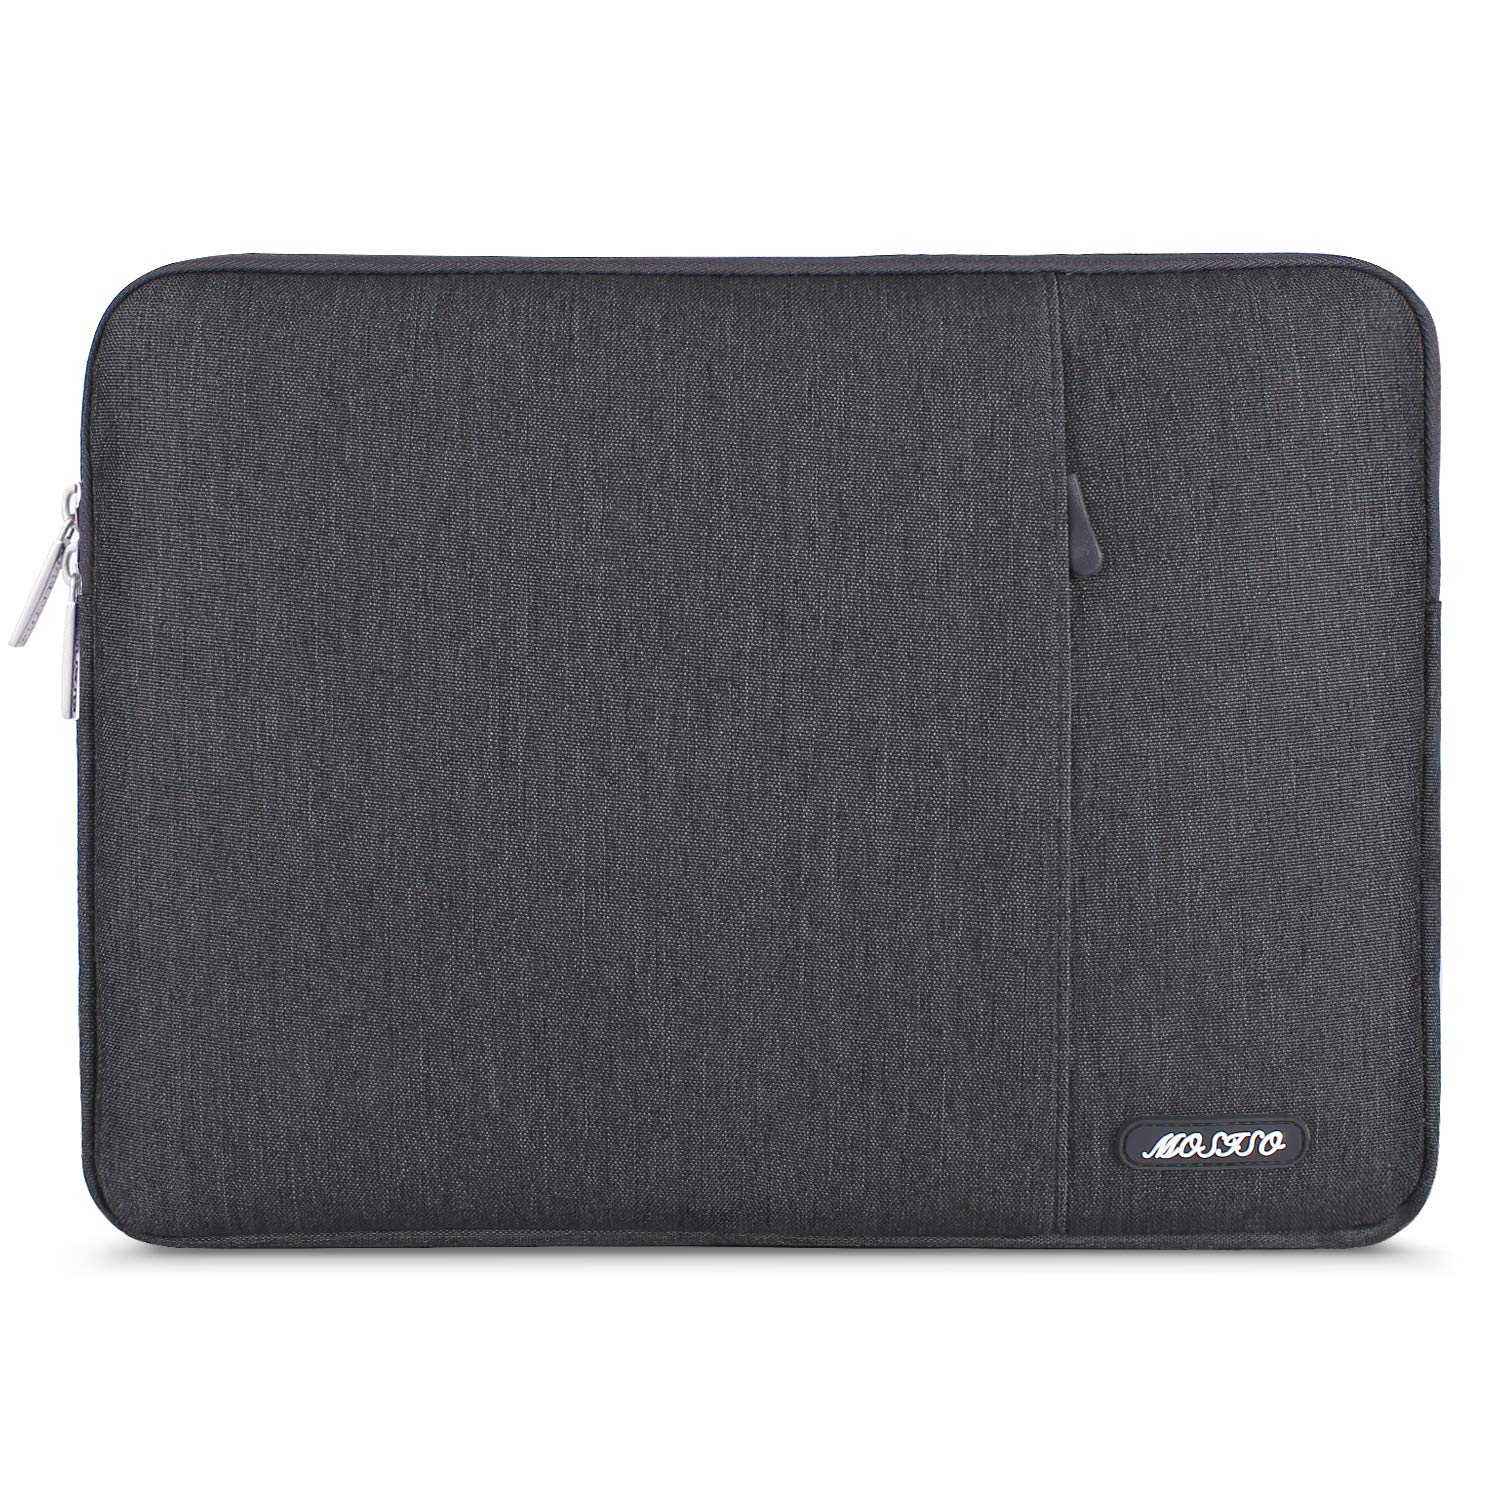 MOSISO Laptop Sleeve Bag Compatible 13-13.3 Inch MacBook Pro, MacBook Air, Notebook Computer, Vertical Style Water Repellent Polyester Protective Case Cover with Pocket, Space Gray